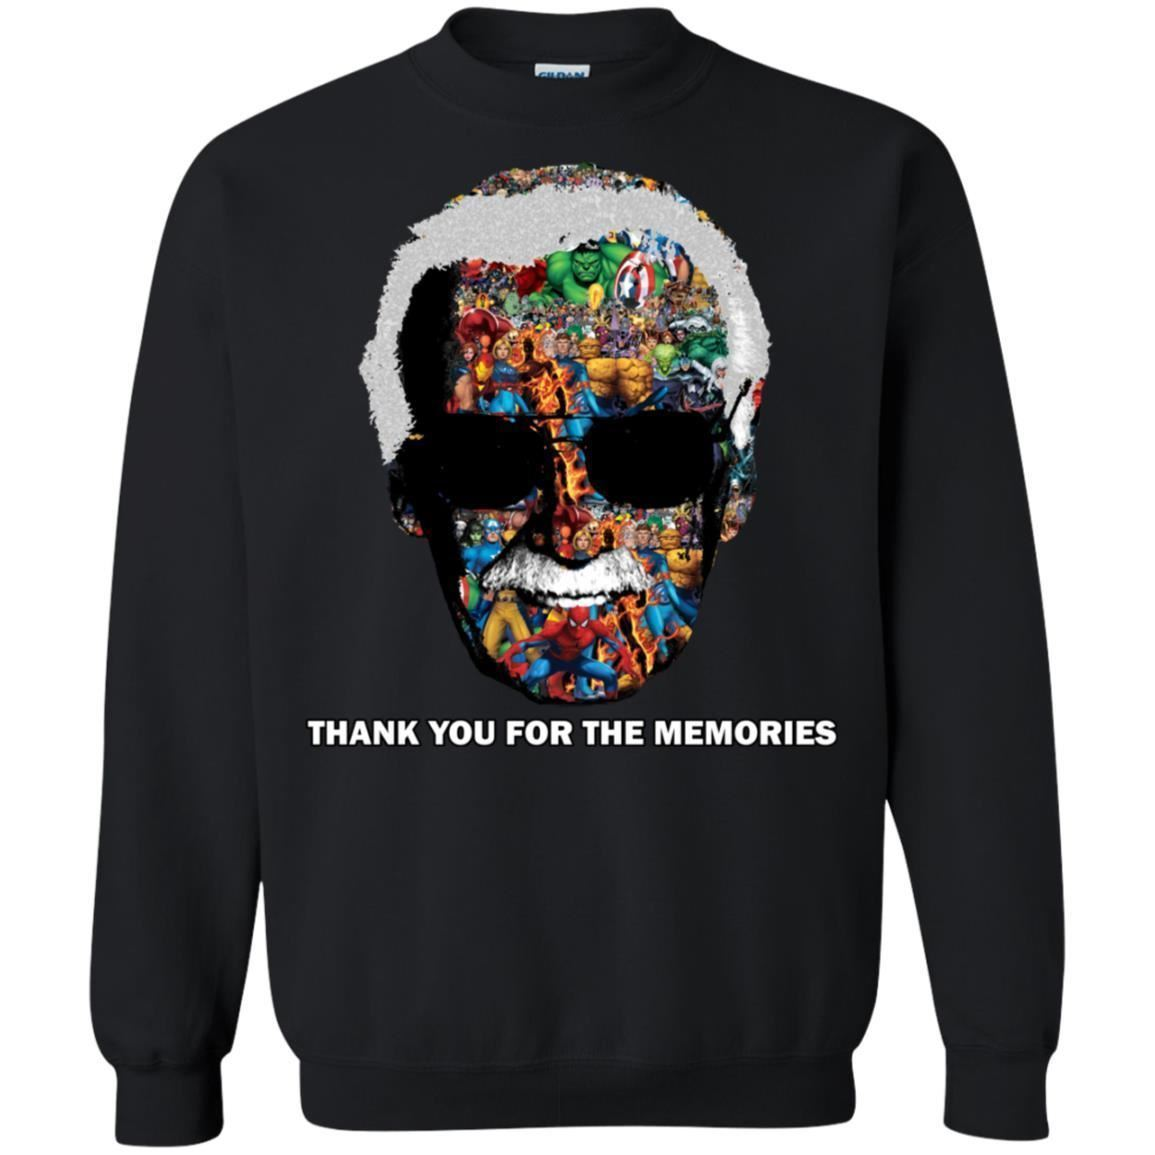 Thank You For The Memories Tee Shirt  - Inspired By Stan Lee Sweatshirt - Super image 3